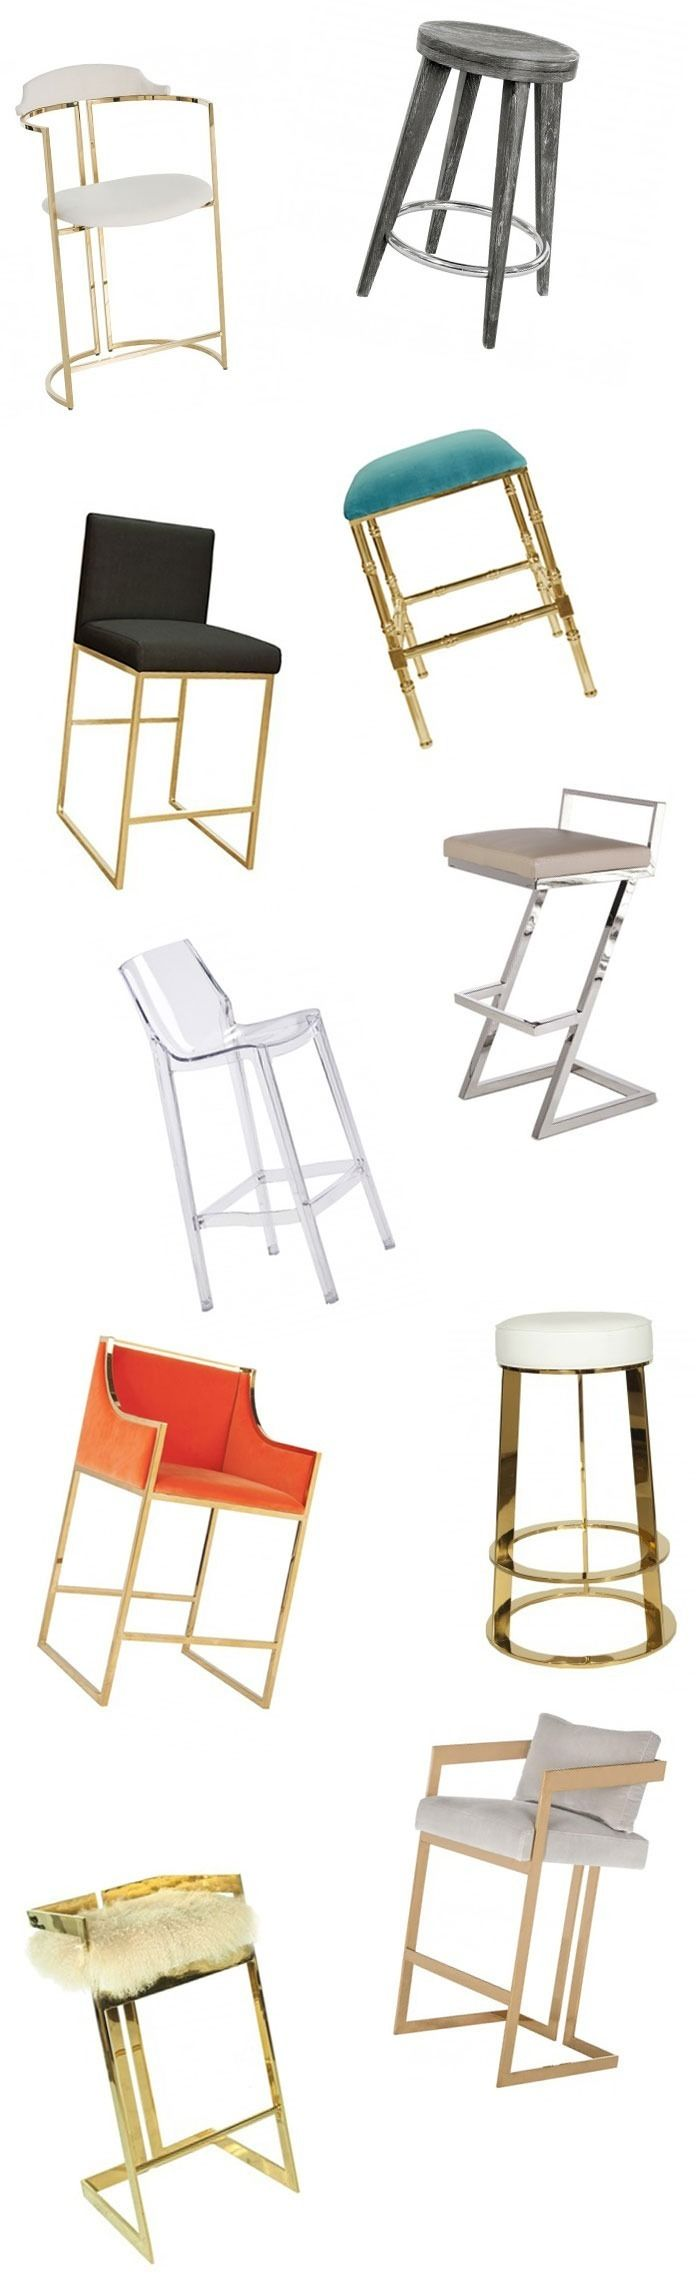 Chic Counter Stools and Barstools - Our Top 10 List | The Well Appointed House Blog: Living the Well Appointed Life